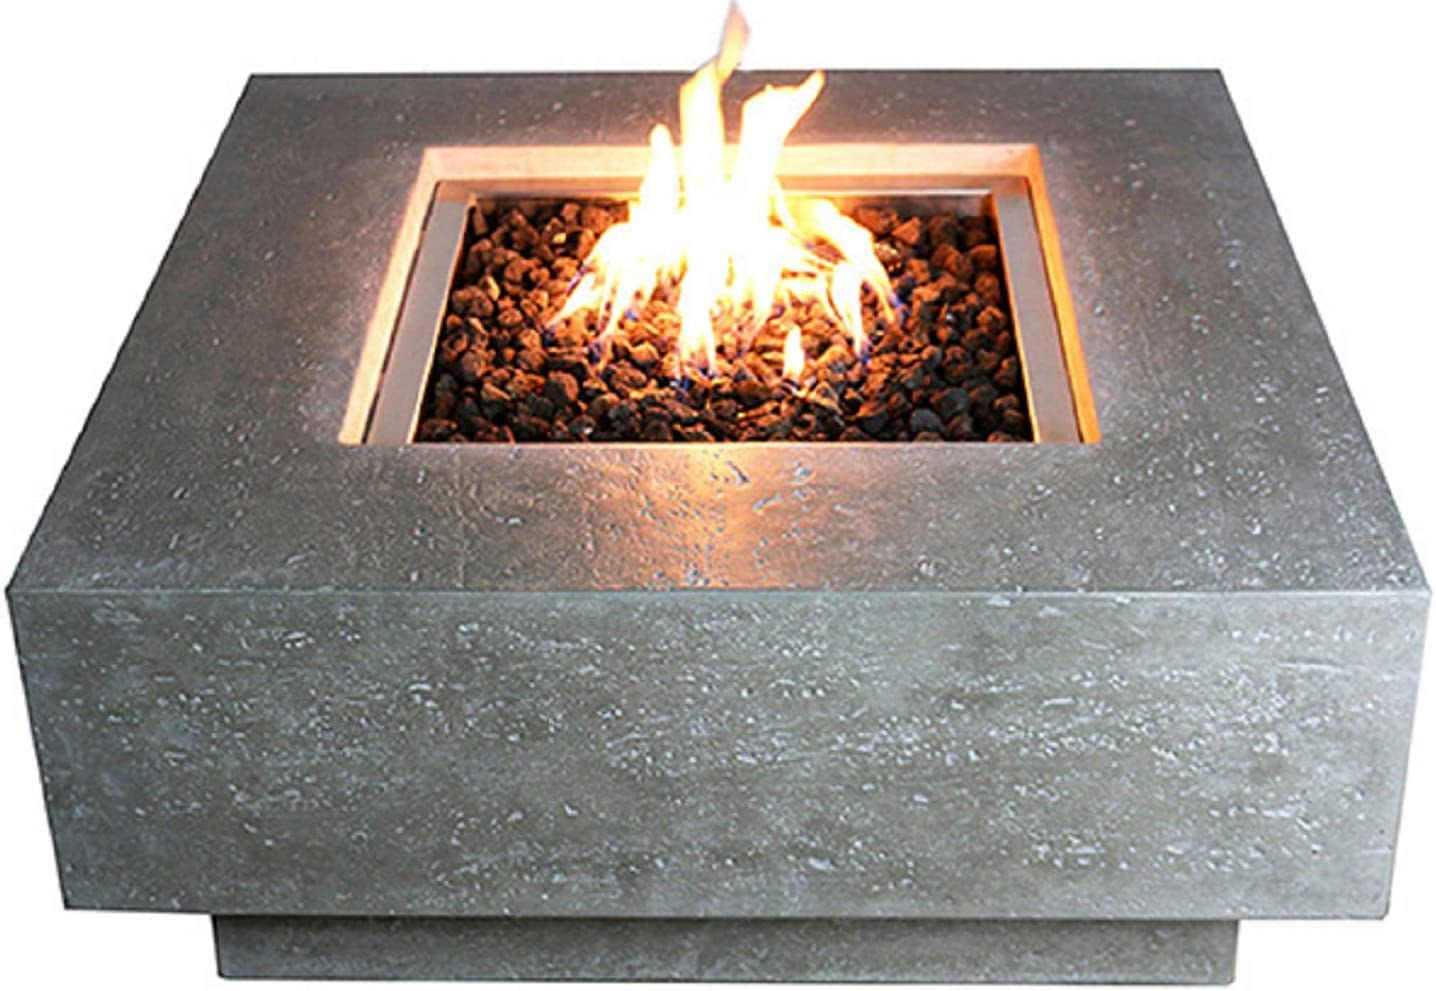 Elementi Manhattan Outdoor Gas Firepit Table 36 Inches Natural Gas Fire Pit Patio Heater Concrete High Floor Firepits Outside Electronic Ignition Backyard Fireplace Cover Lava Rock Included